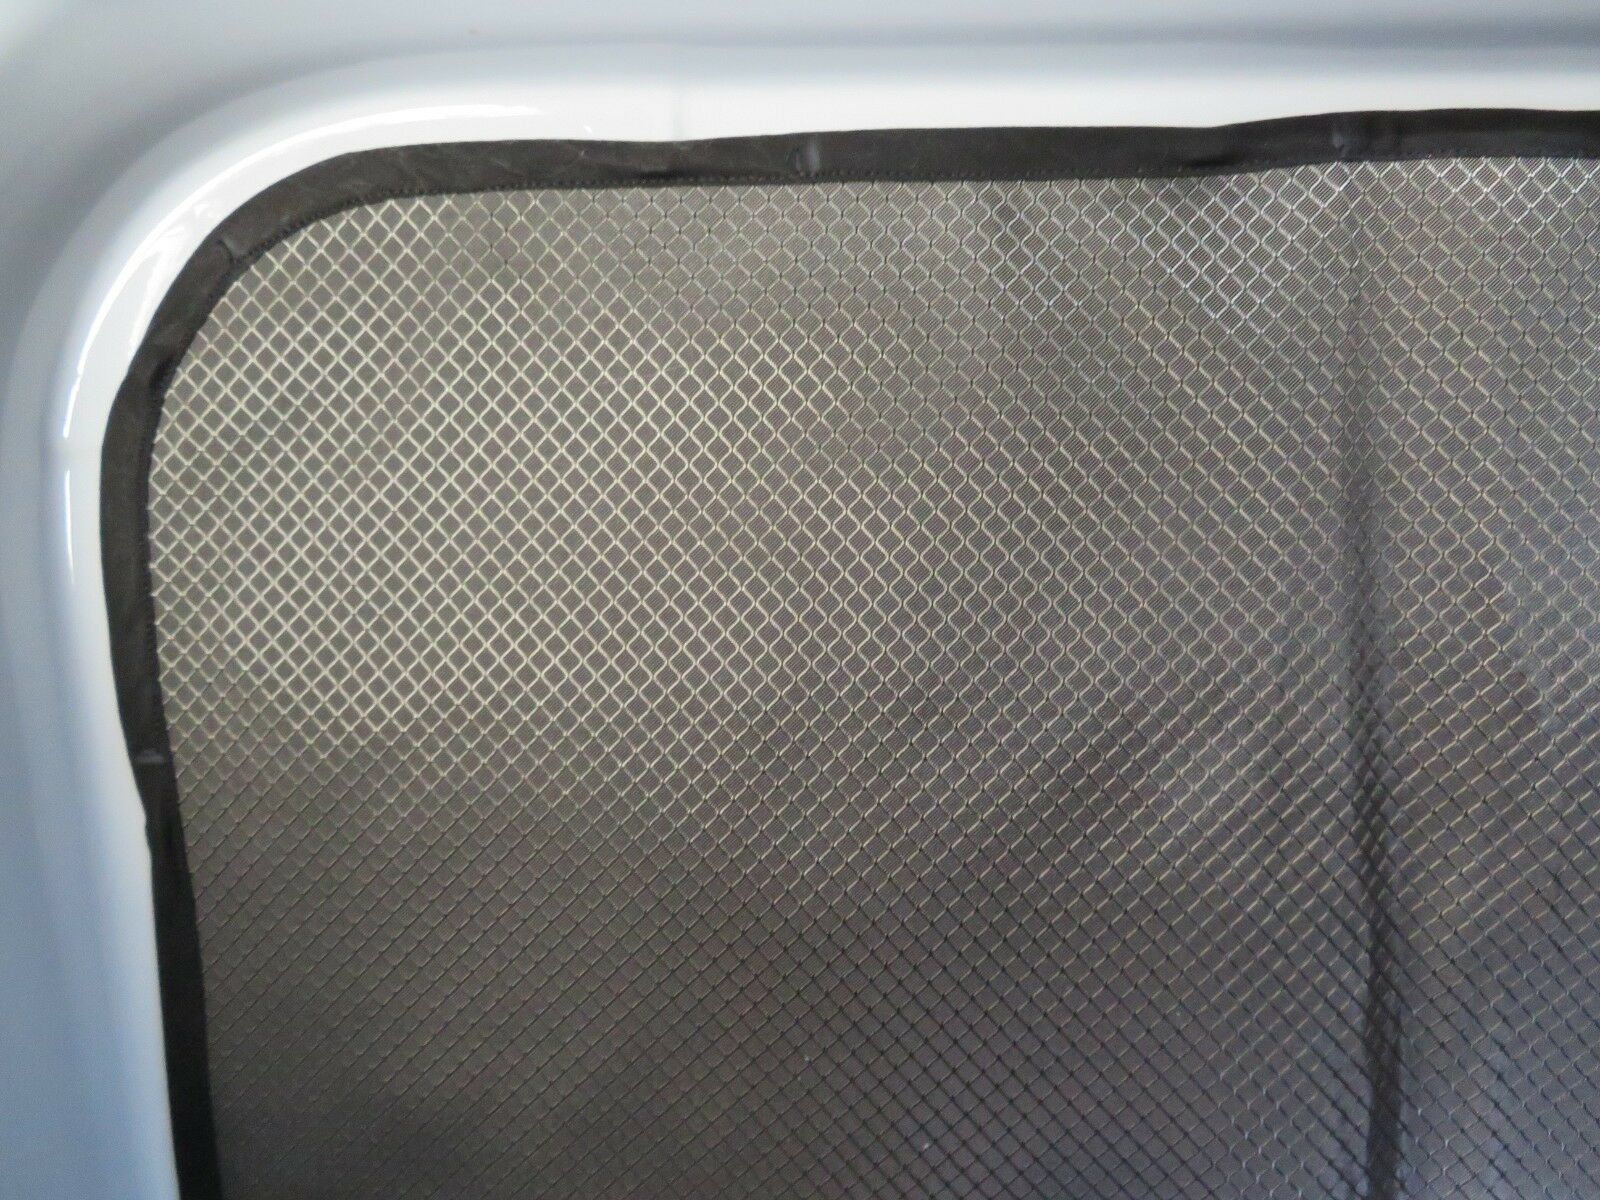 Clearance - Center Window Cover for 170 WB Sprinter - Passenger's Side - Ripplewear